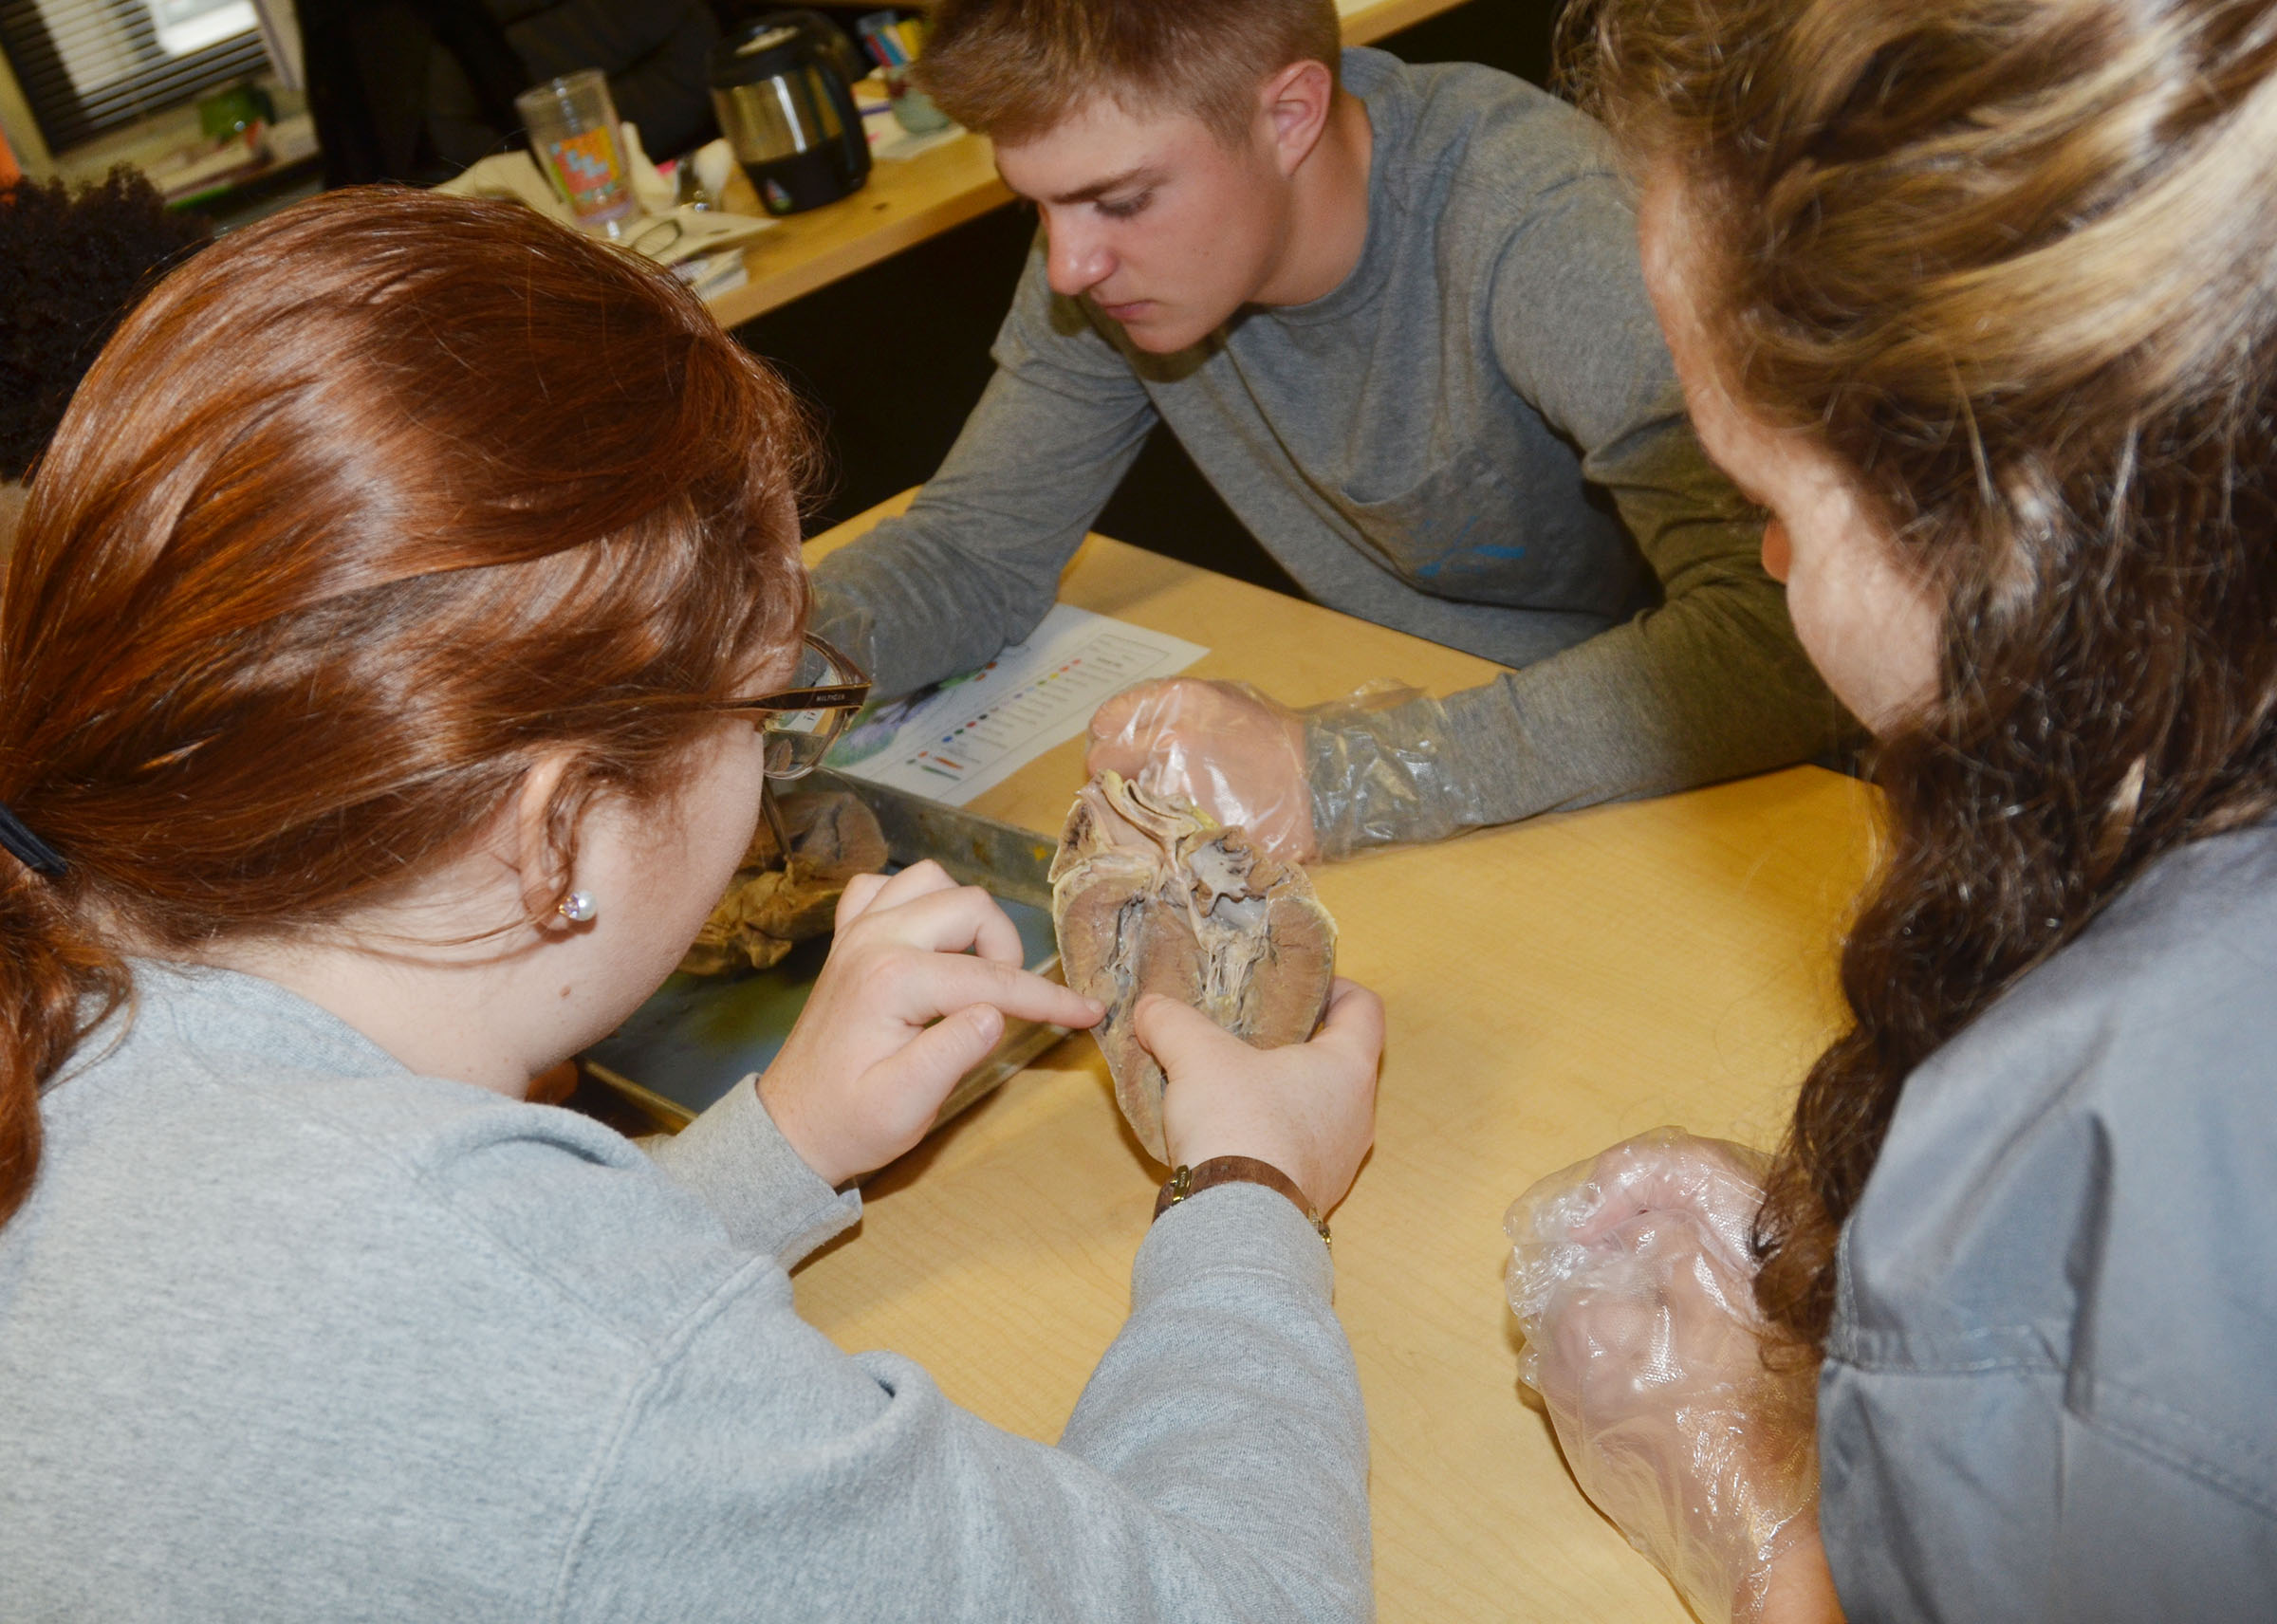 CHS seniors Mallory Haley, at left, and Caroline McMahan work with junior Alex Doss to identify the parts of the heart.